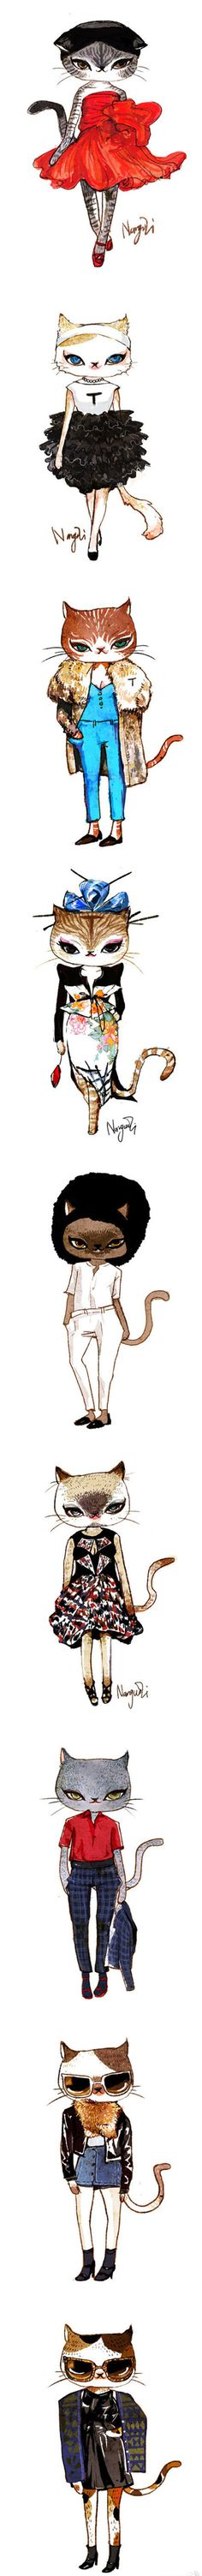 Kitty Illustrations by Nargu Li. Crazy Cat Lady, Crazy Cats, I Love Cats, Cool Cats, Images Victoriennes, Image Chat, Son Chat, Gatos Cats, Photo Chat